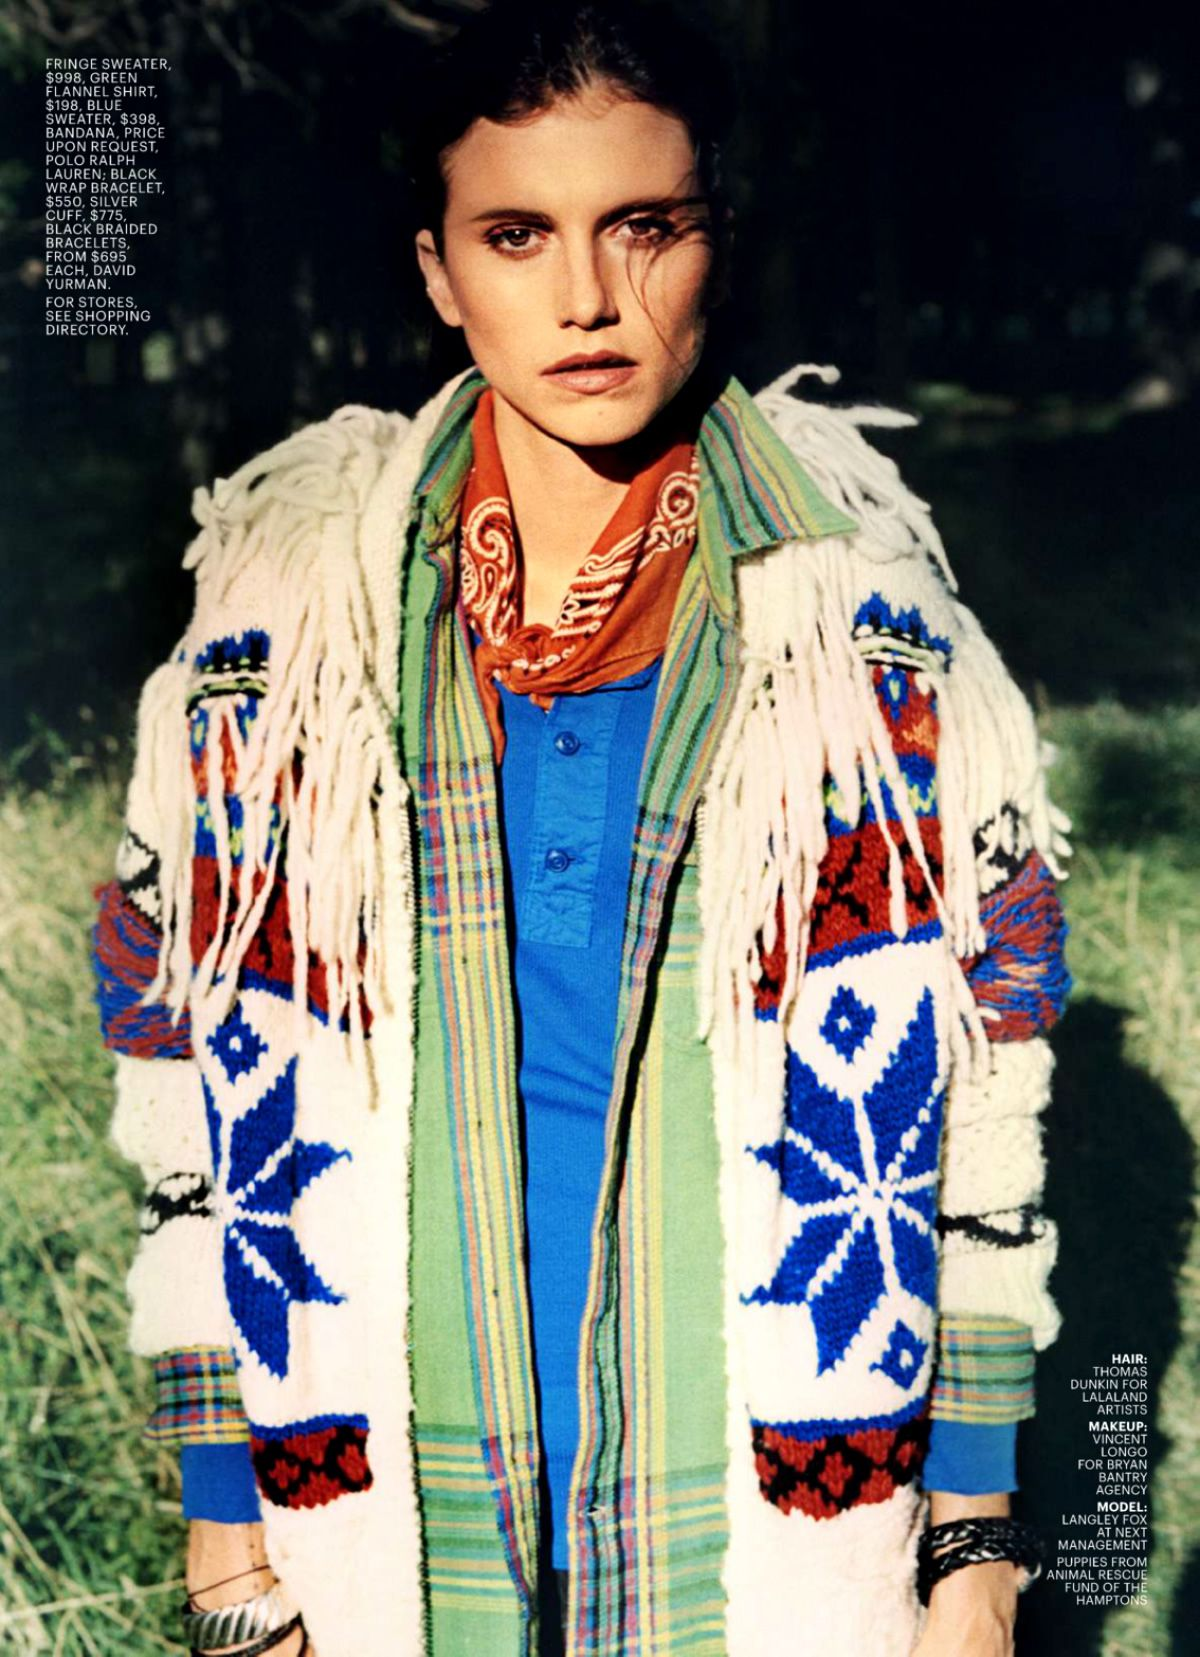 Flannel fashion makeup  Langley Fox Hemingway by Elina Kechicheva for Marie Claire US